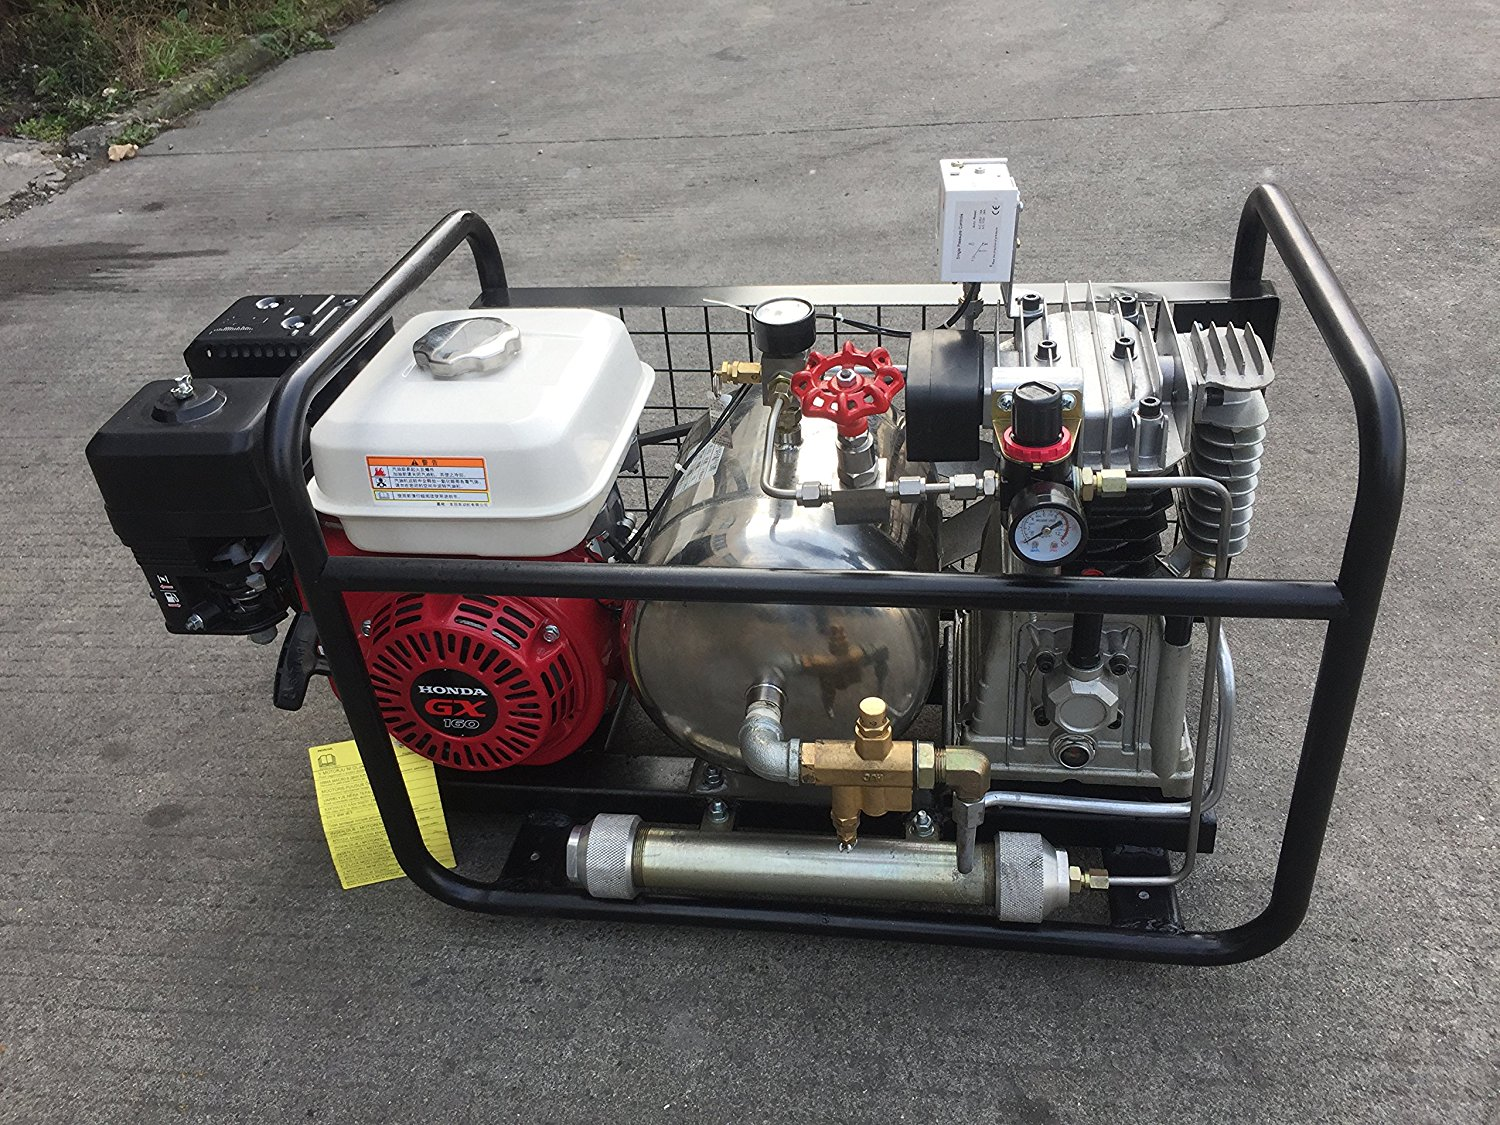 Details about Gas-Powered Oil Free Air Compressor by Honda Engine Hookah  Dive System SCU80P